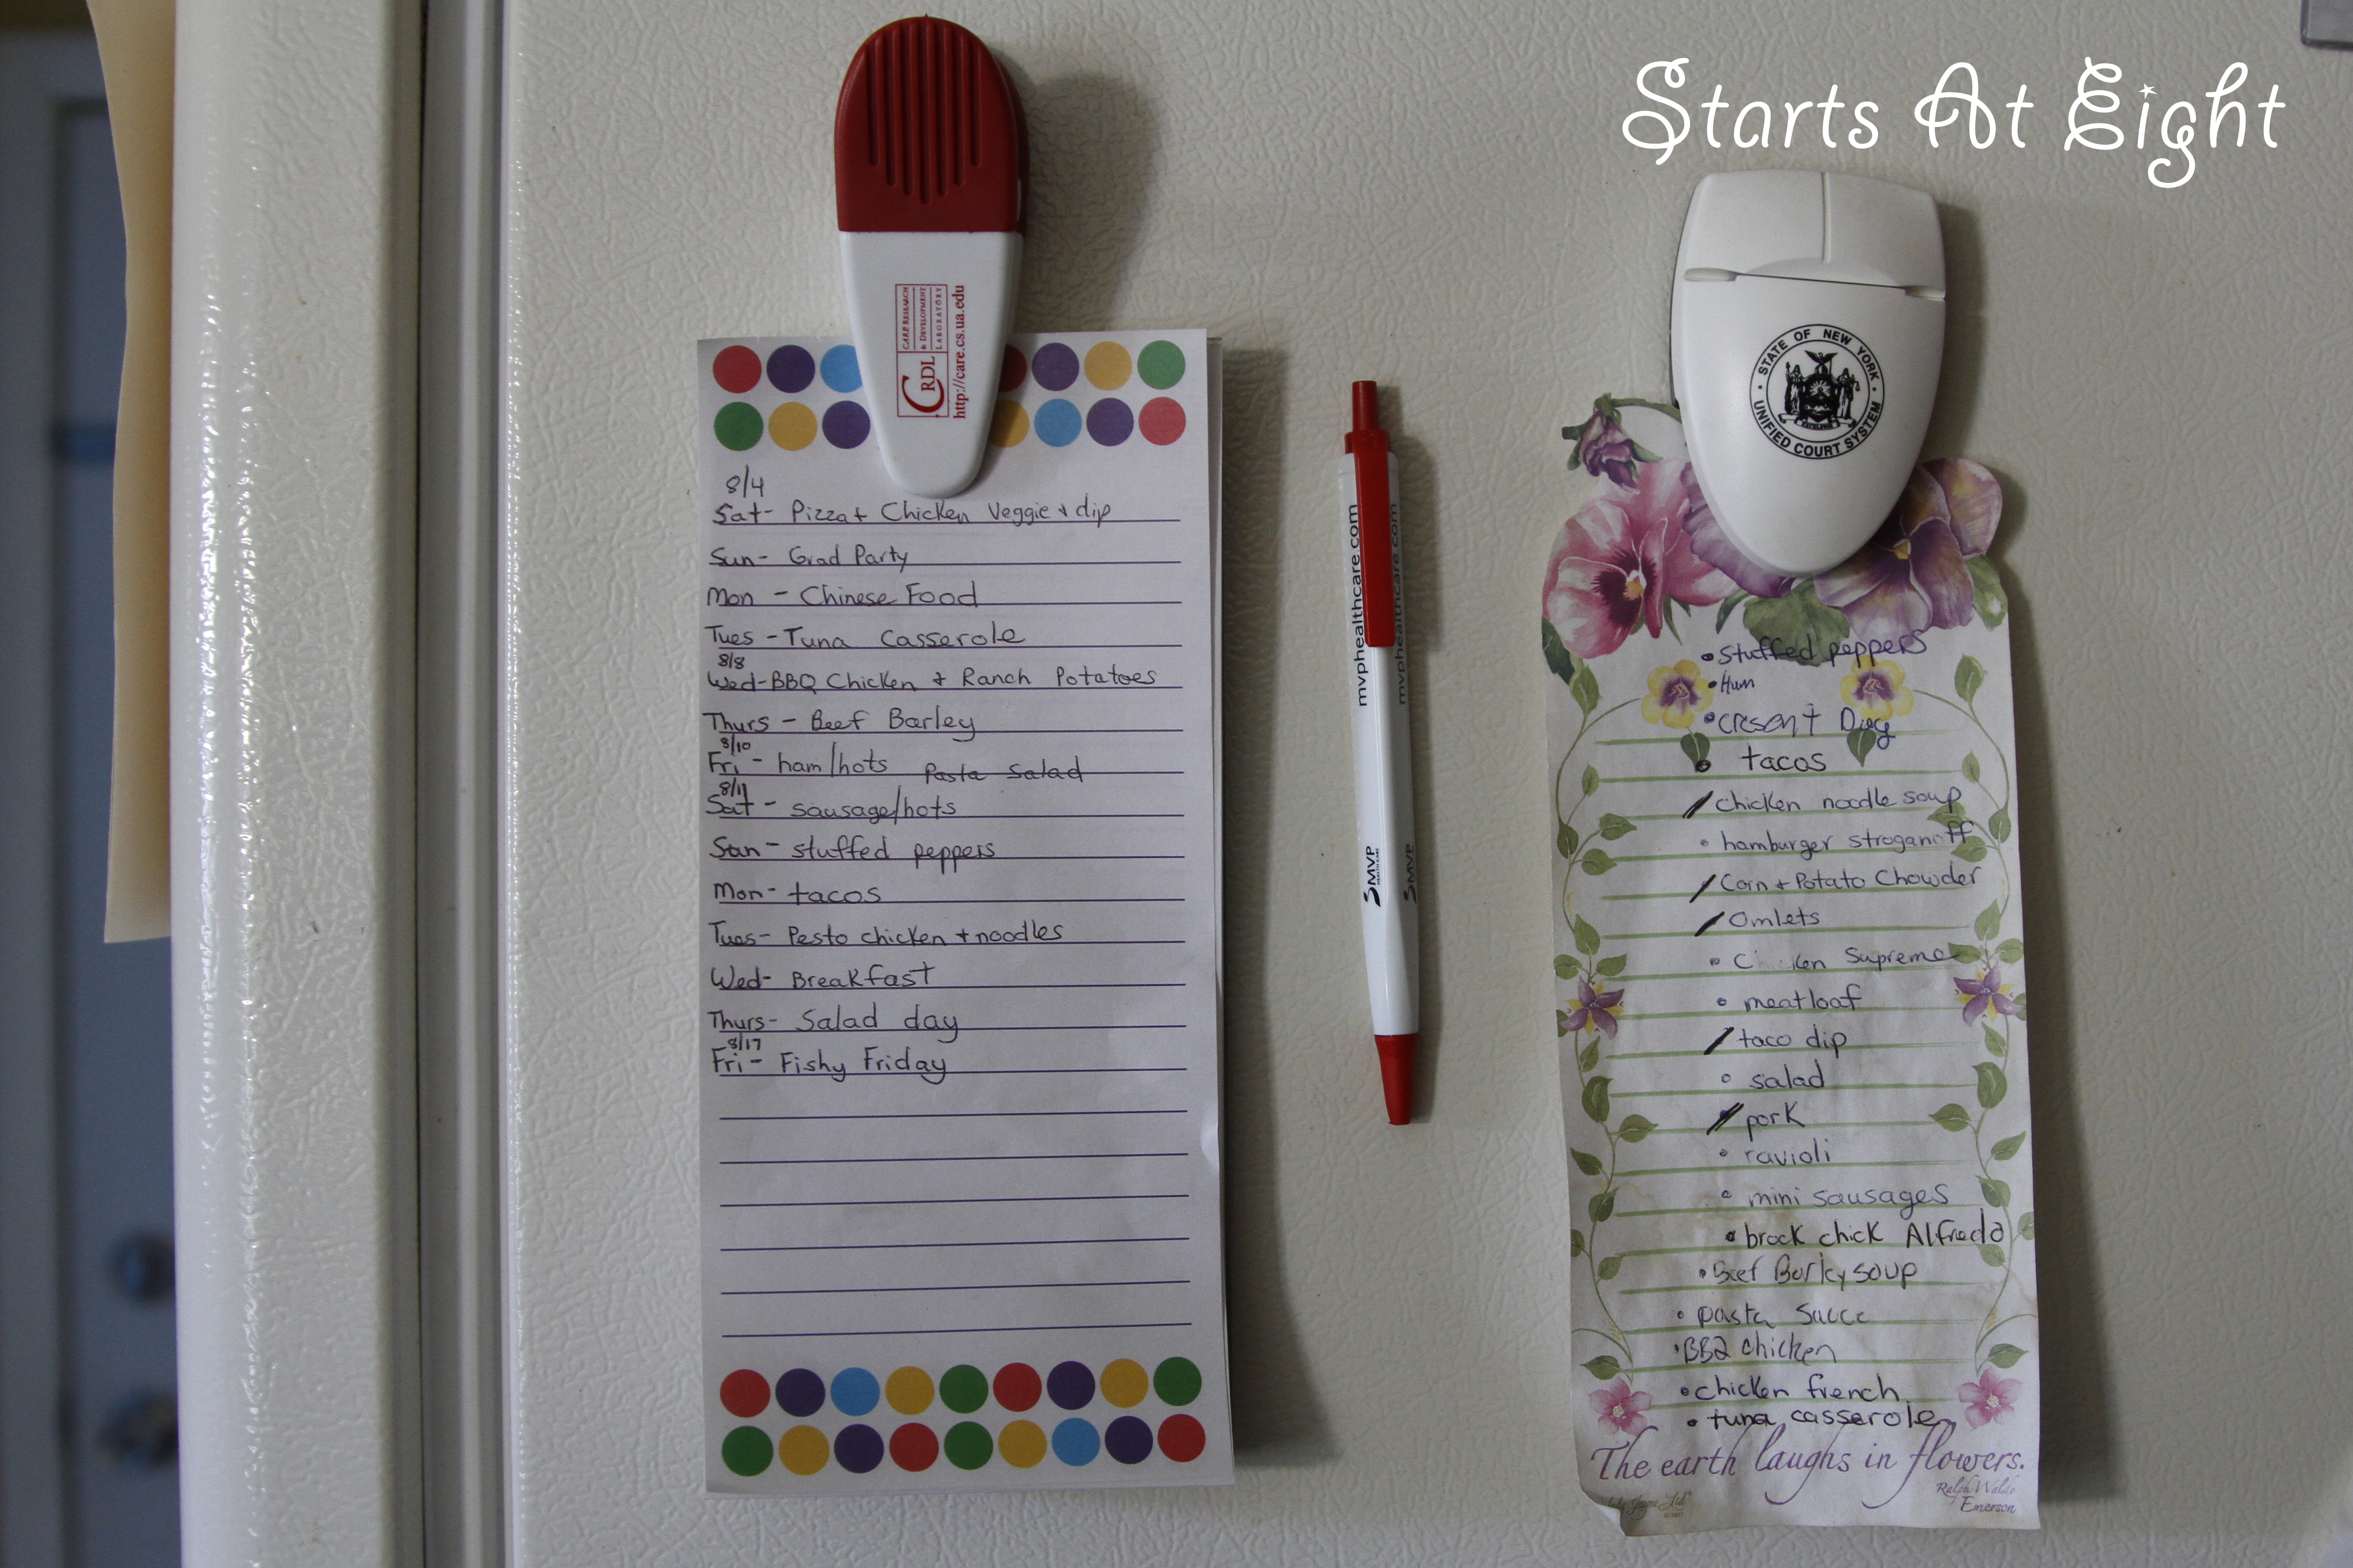 Saving Money and Pounds ~ Biweekly Meal Planning